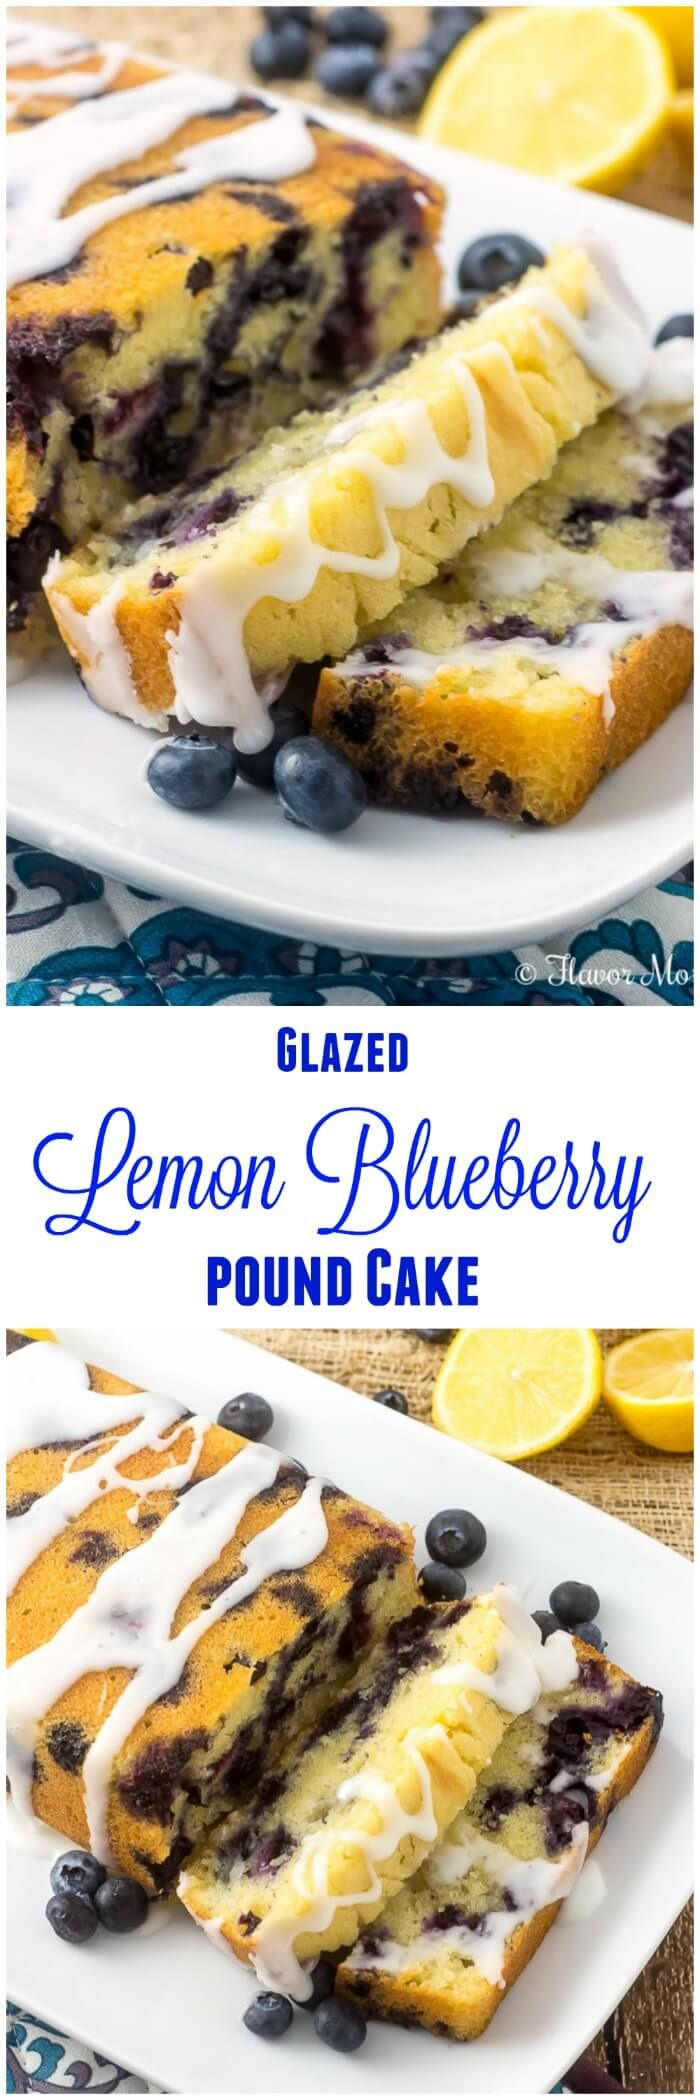 This Glazed Lemon Blueberry Pound Cake is a moist, luscious, buttery, lemon pound cake made with beautiful fresh blueberries throughout and glazed with a sweet, tangy lemon icing. It is similar to the Iced Lemon Pound Cake found at Starbucks but with the addition of fresh blueberries. ~ http://FlavorMosaic.com